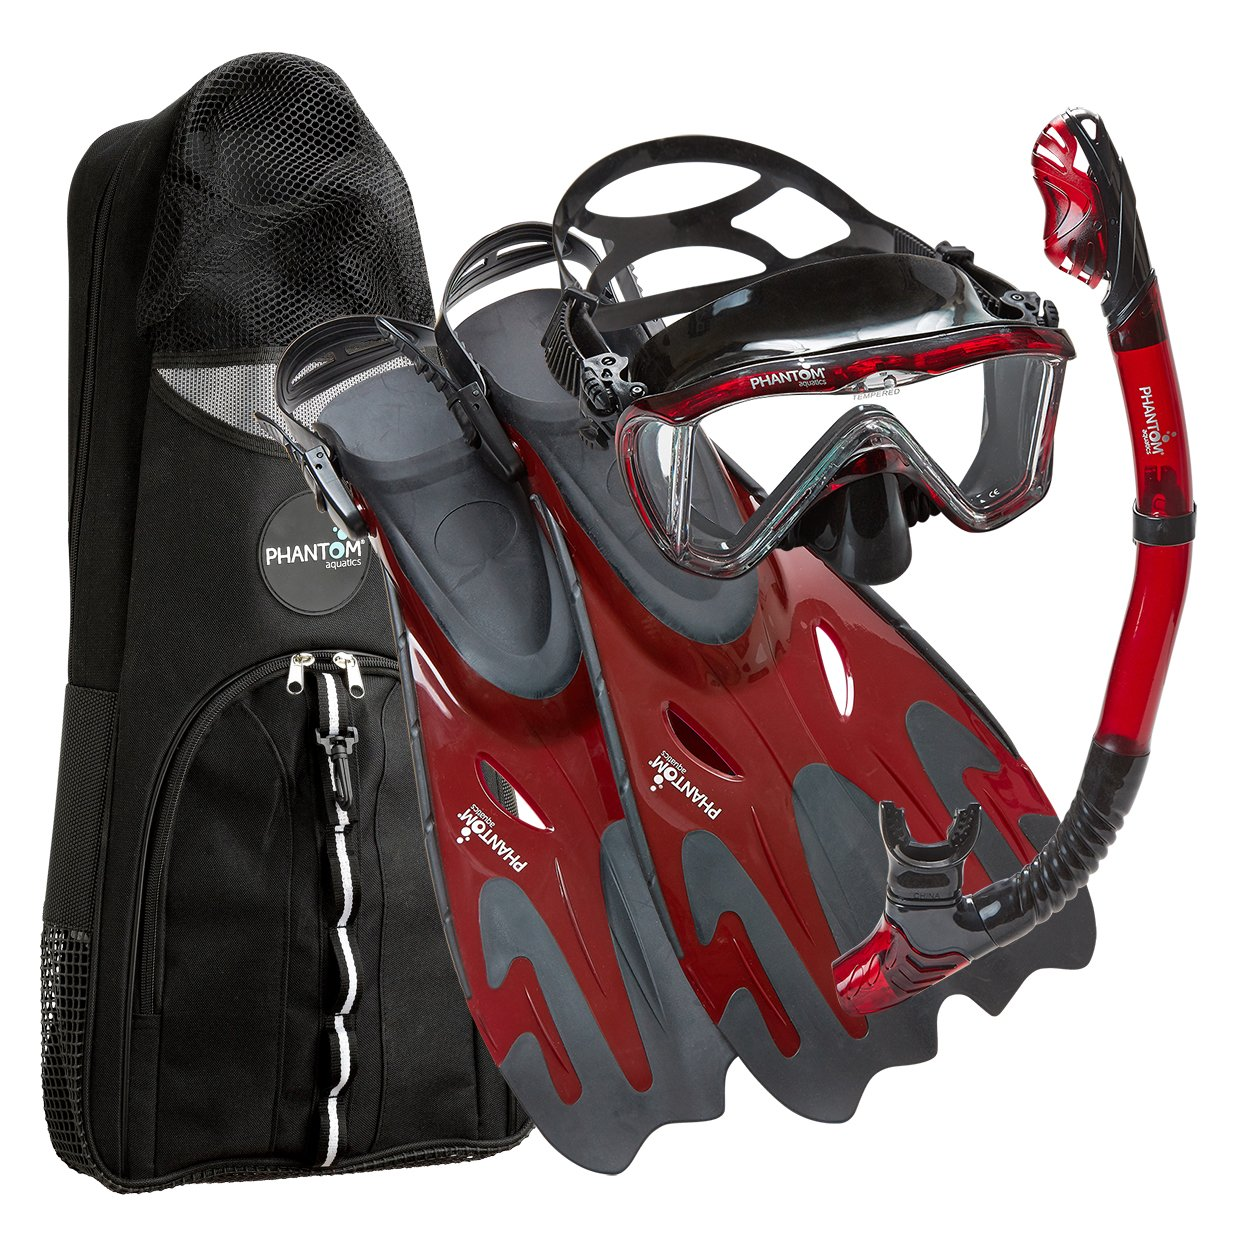 Phantom Aquatics Legendary Mask Fin Snorkel Set with Mesh Bag, Black/Red, Small/Medium (5-8) by Phantom Aquatics